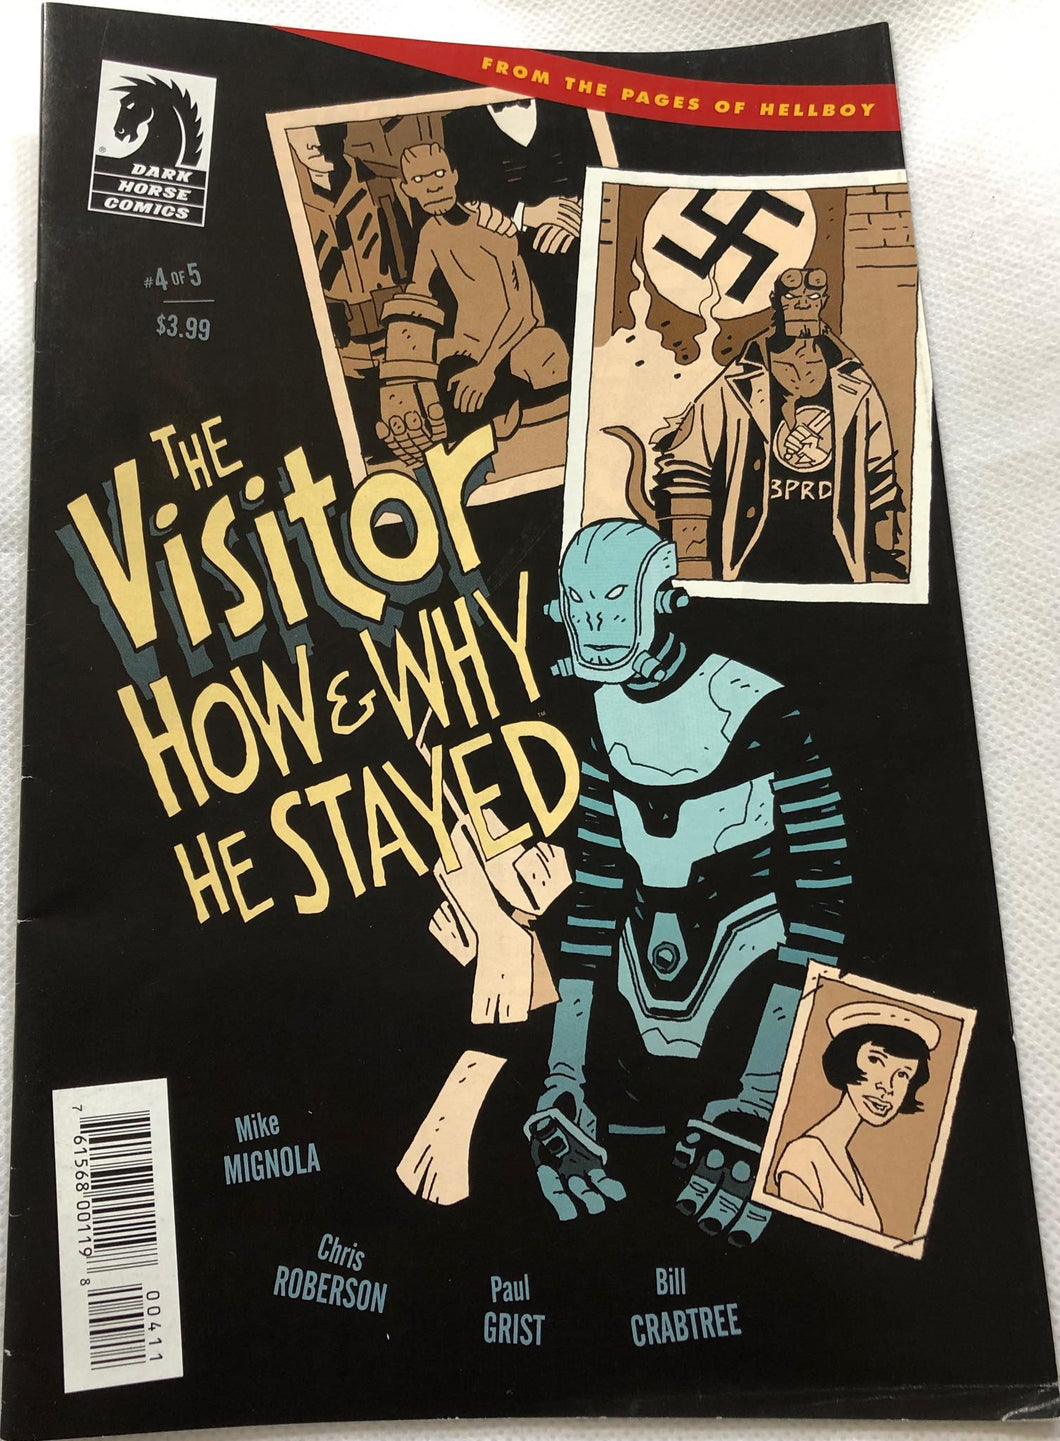 The Visitor How & Why He Stayed #4 - Demize Collectibles LTD